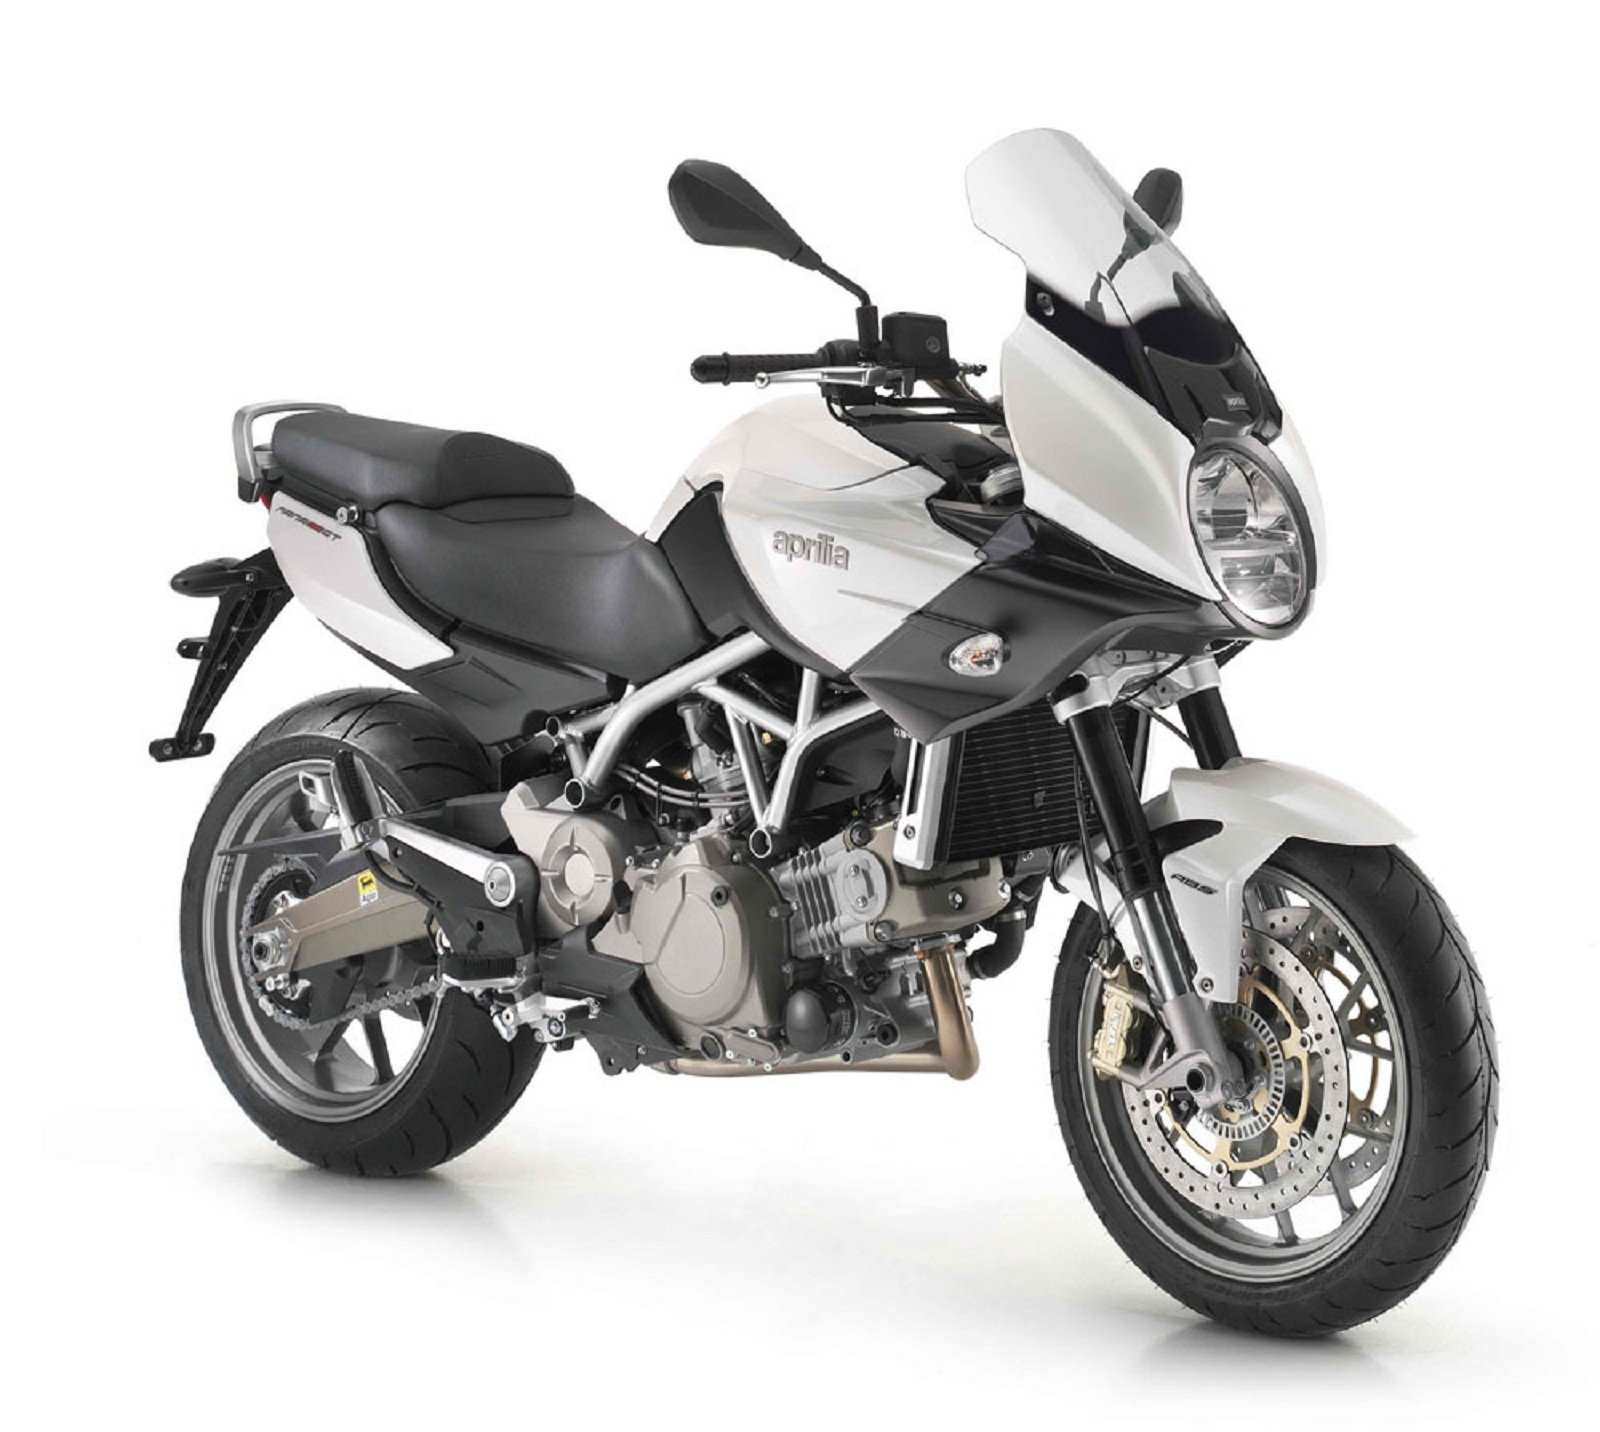 2012 aprilia shiver 750 gt abs picture 438240 motorcycle review top speed. Black Bedroom Furniture Sets. Home Design Ideas